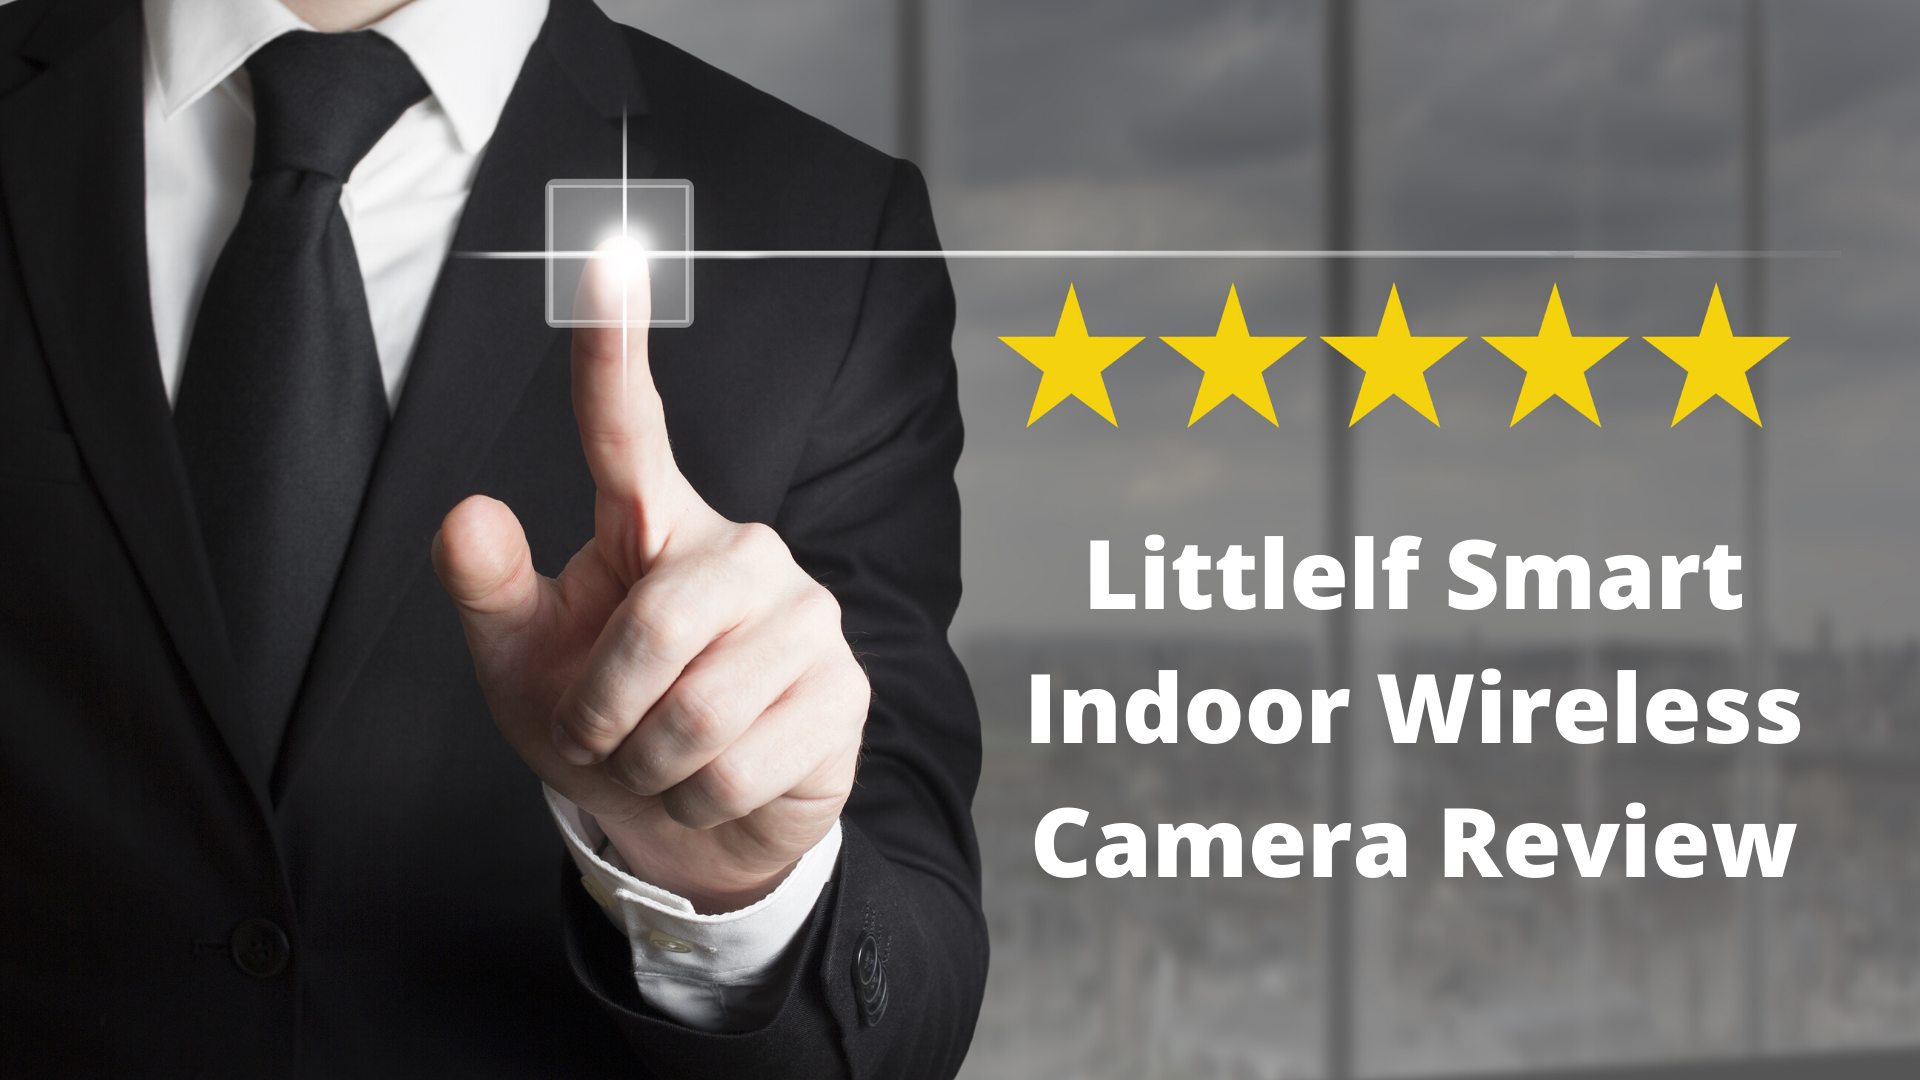 Littlelf Smart Indoor Wireless Camera Review